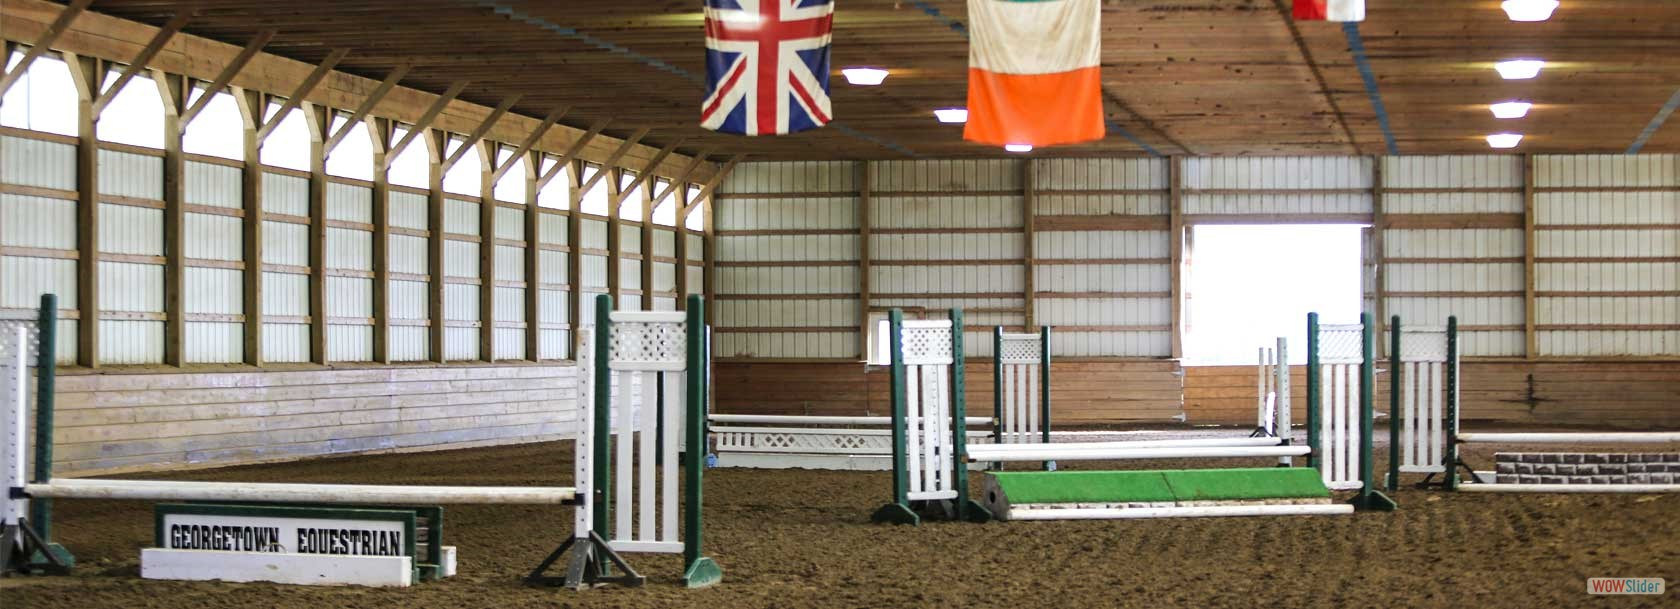 Our Indoor Arena